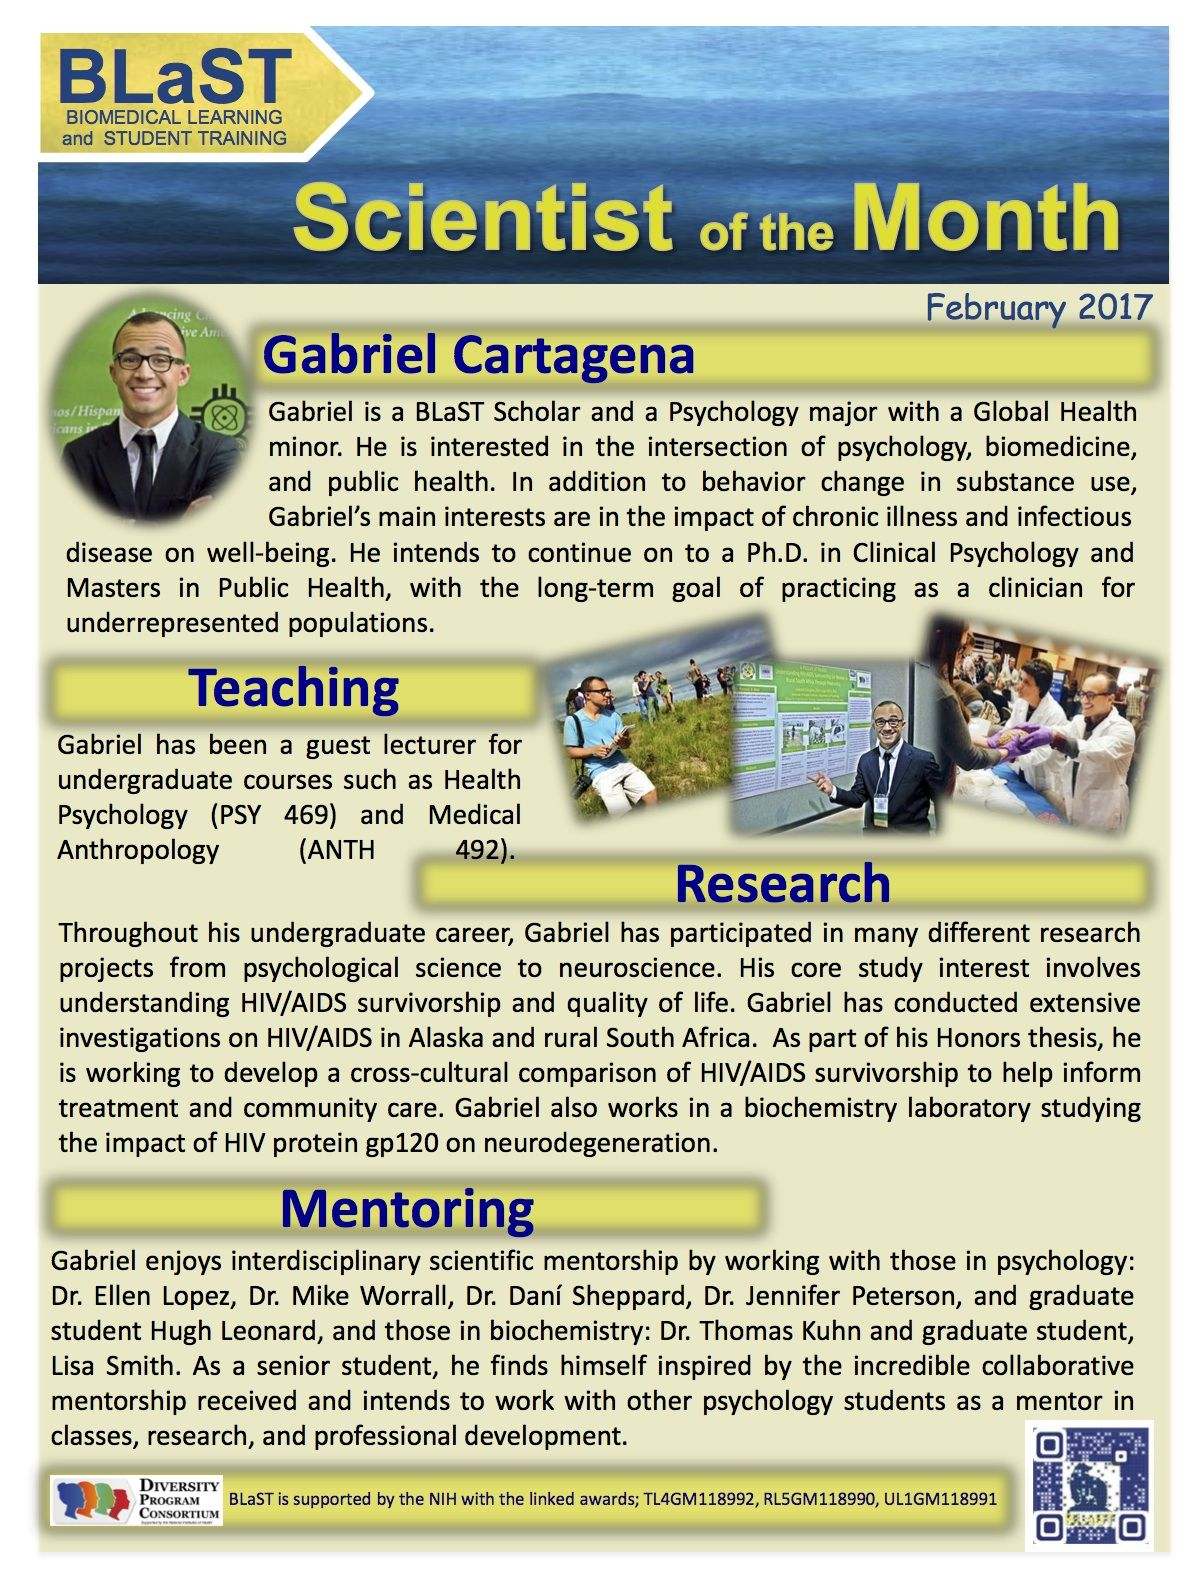 Pin by University of Alaska Fairbanks on Scientists of the